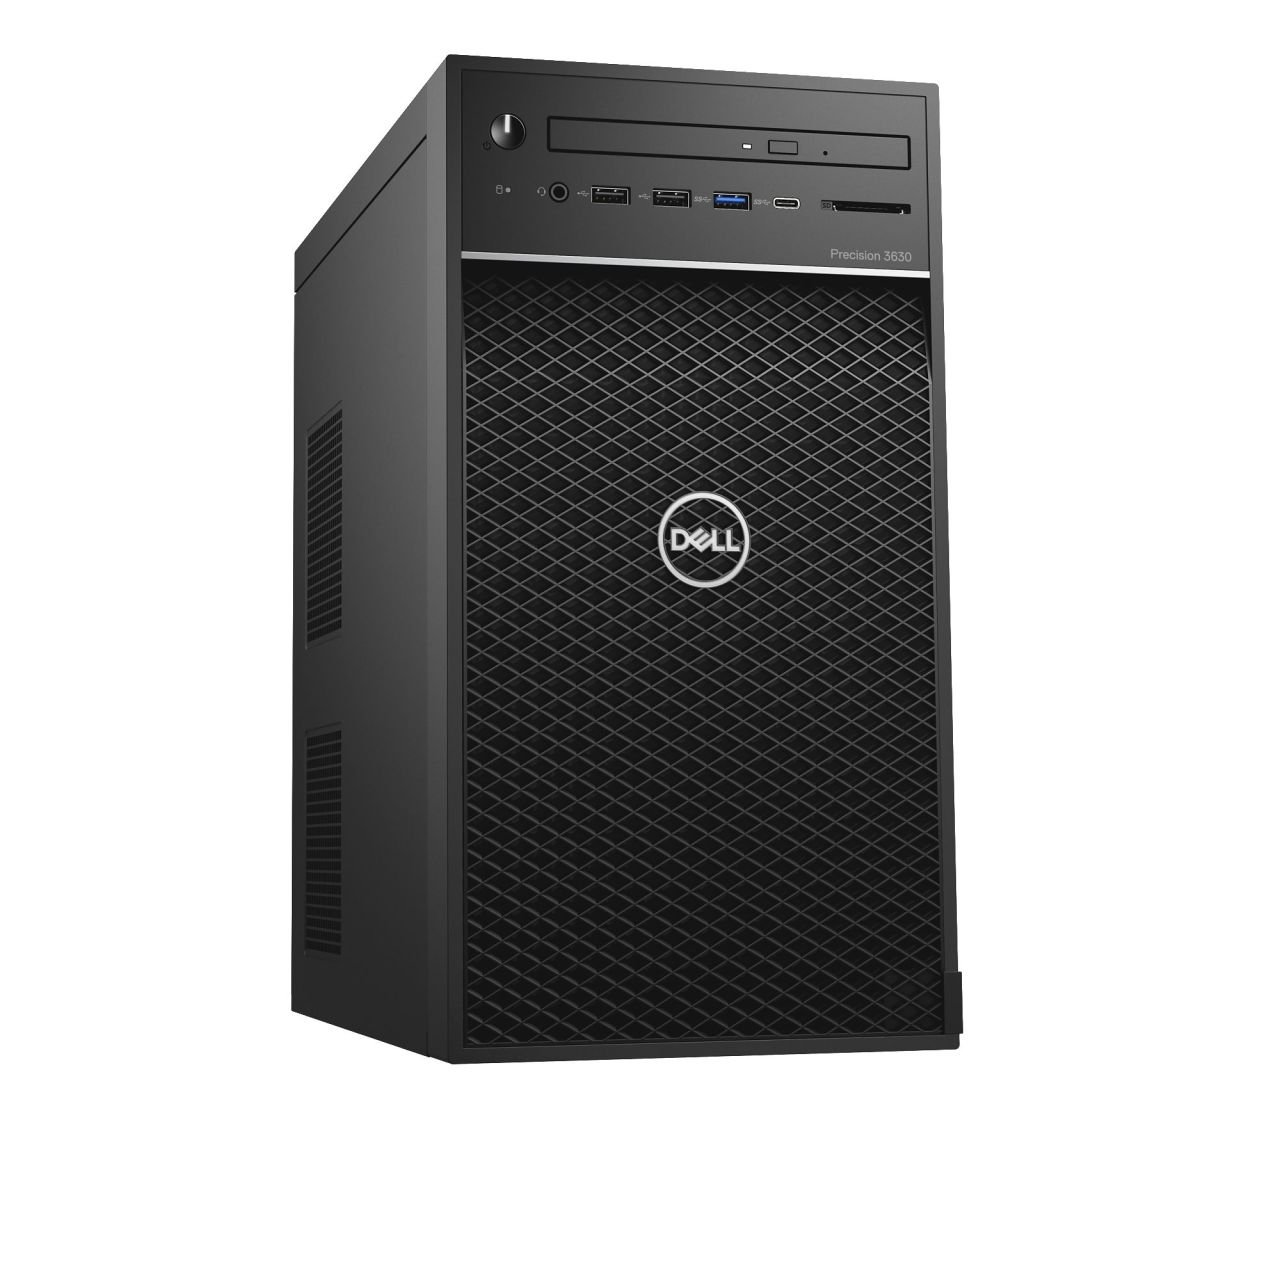 DELL PRECISION T3630 EPSILON E-2174G 16GB 256GB SSD/1TB SATA 5GB QUADRO P2000 460W WIN10 PRO WORKSTATION